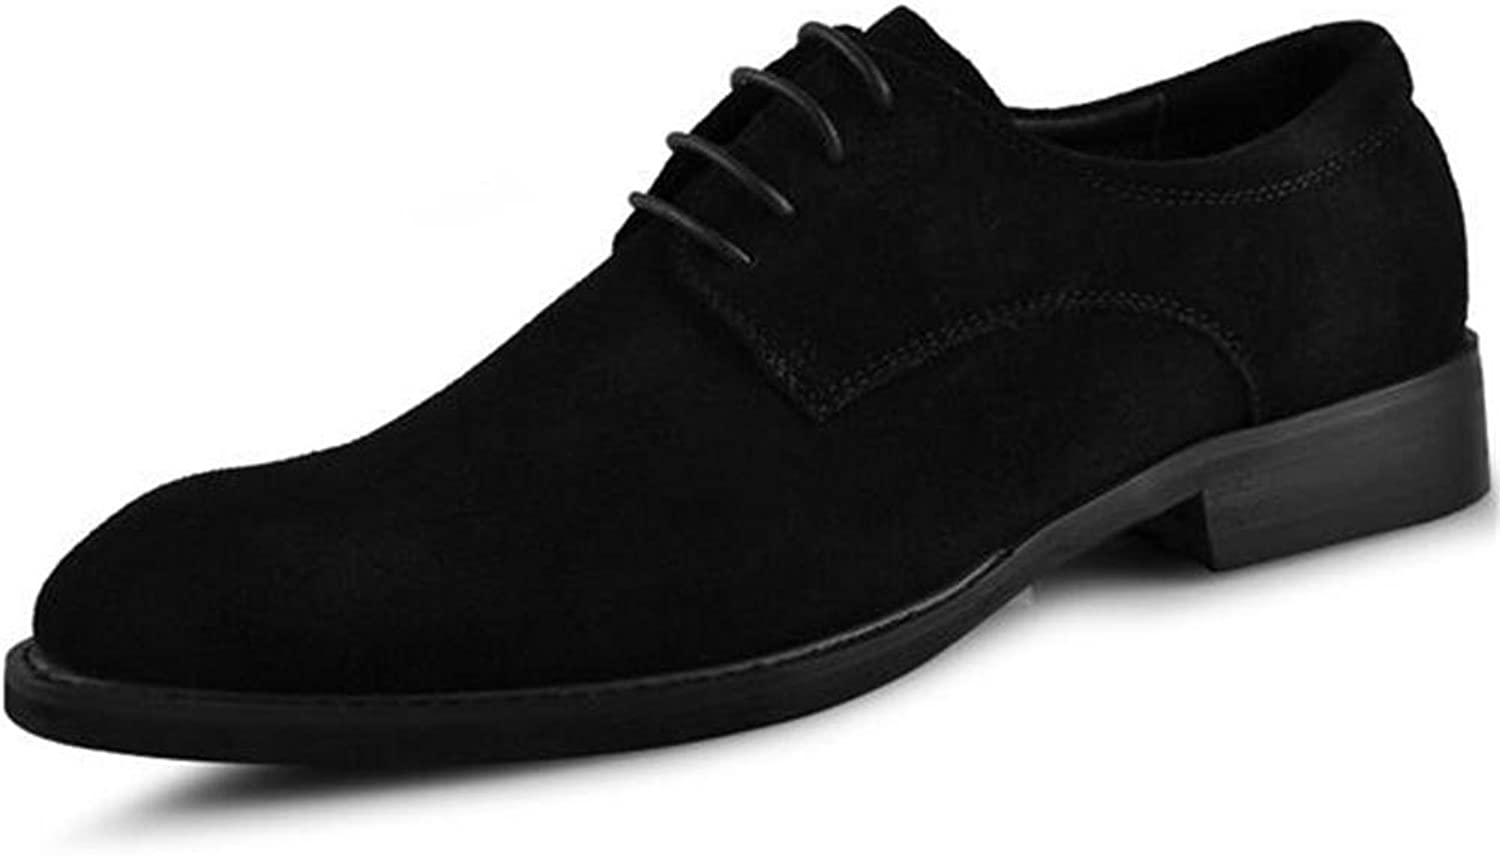 Men shoes Suede Casual Lace-Up Business Formal Dress Oxford